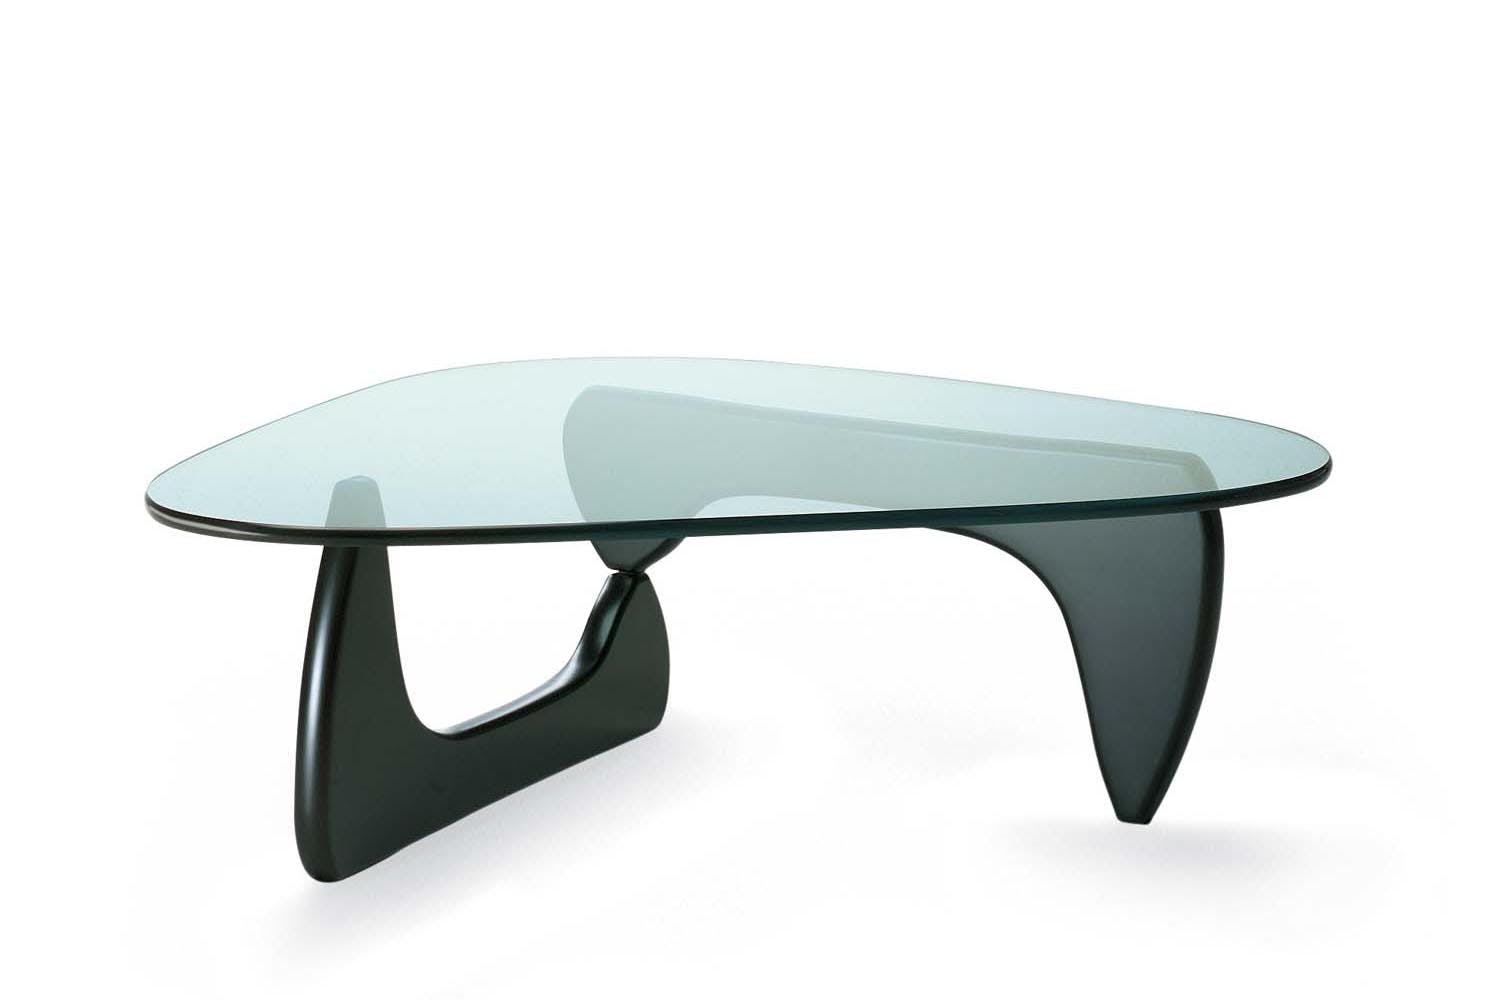 noguchi coffee table black ash by isamu noguchi for vitra space furniture. Black Bedroom Furniture Sets. Home Design Ideas